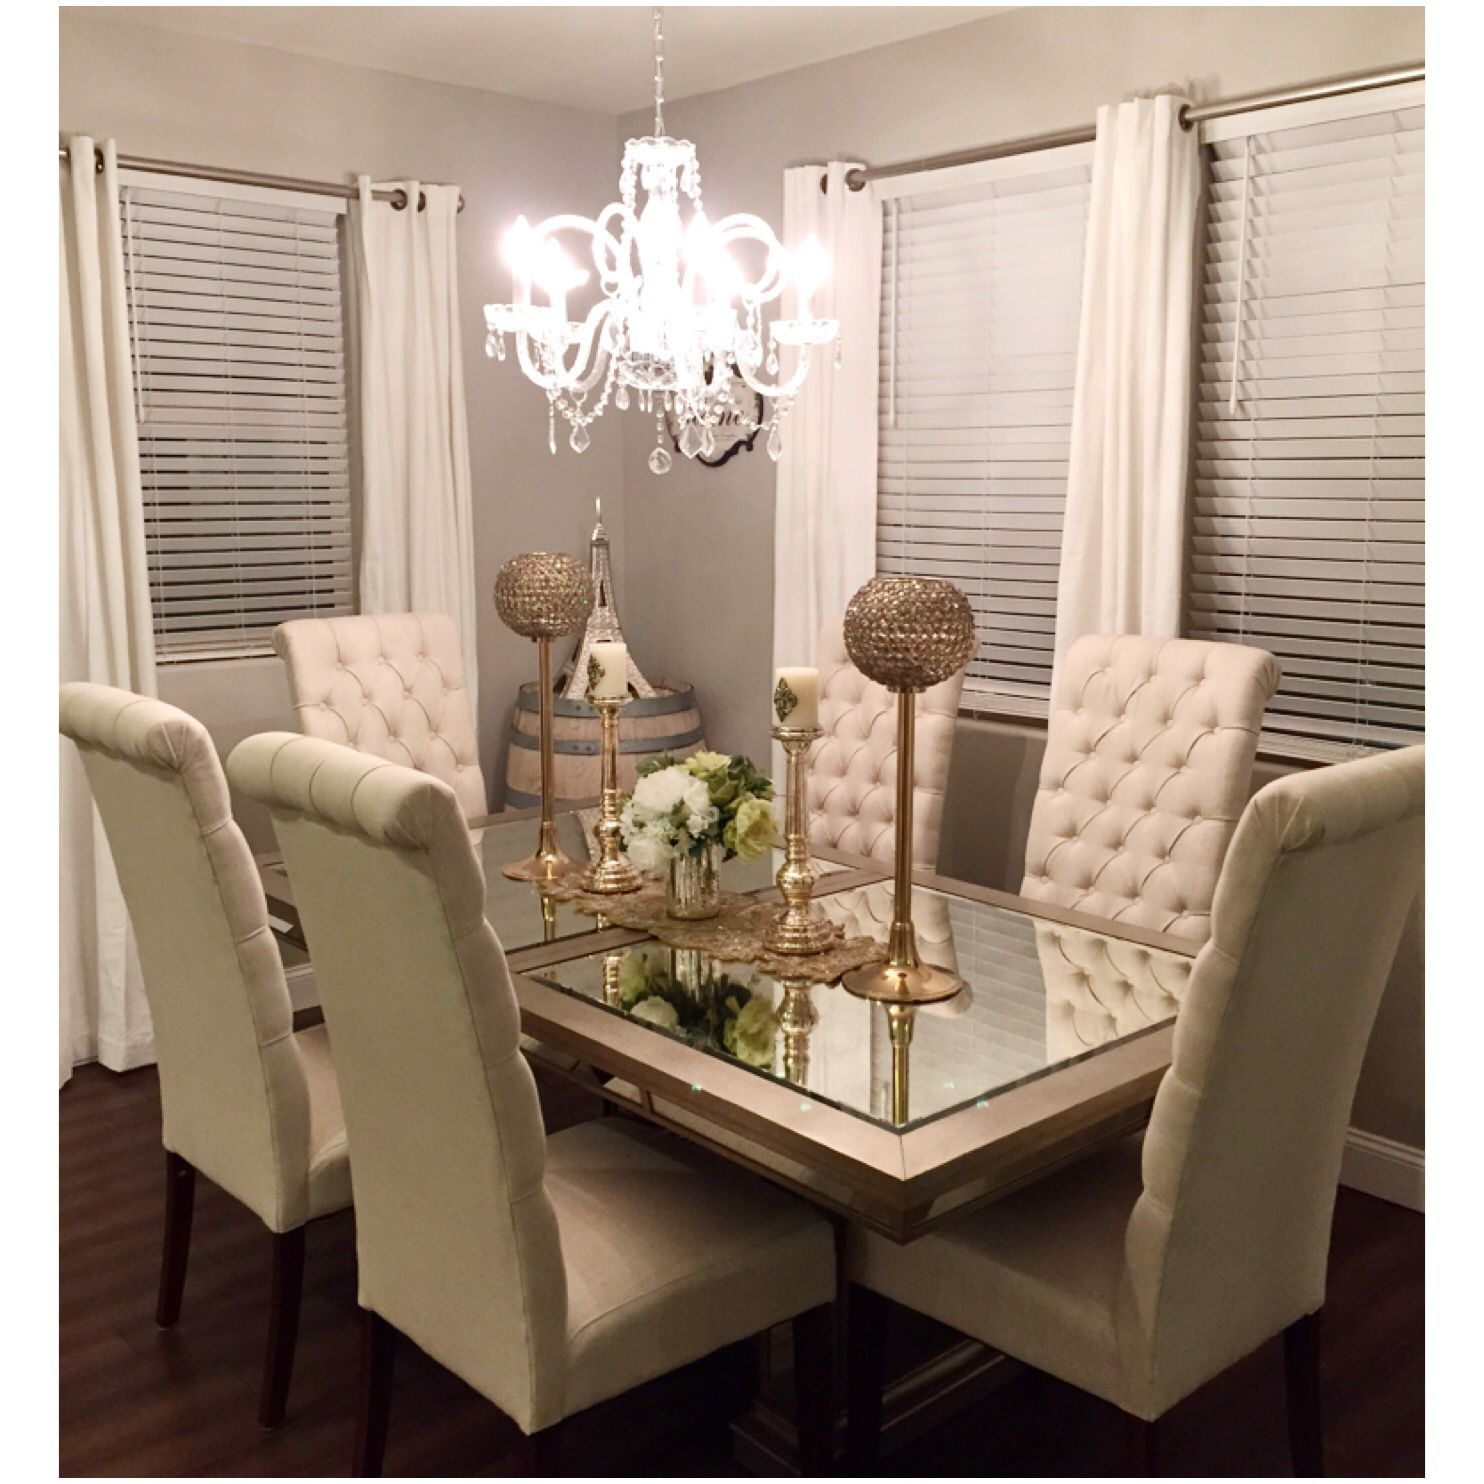 Dining room glass table tall chairs tufted cream paris ...